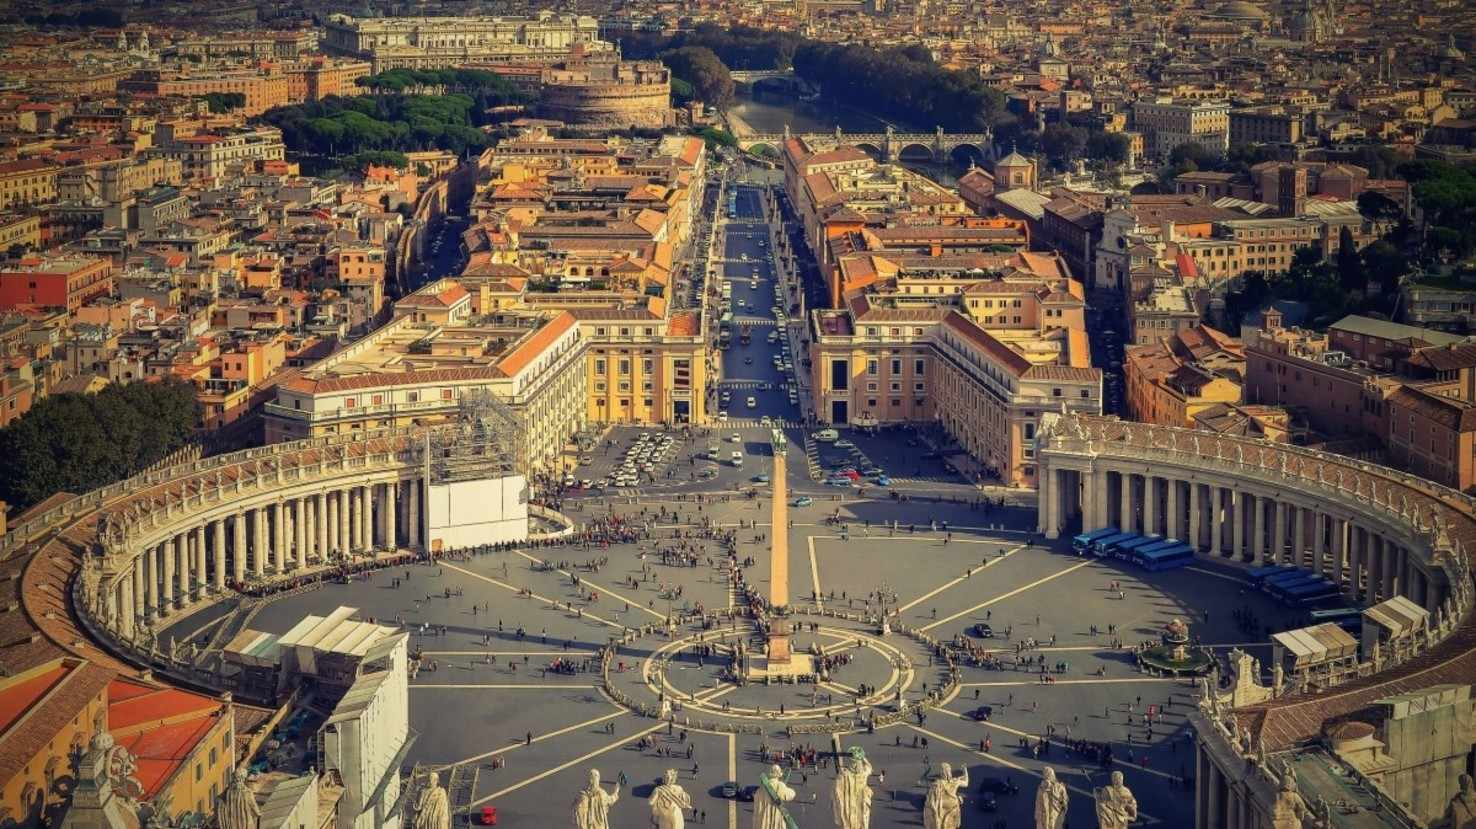 Large rome the vatican italy st peter s square piazza san pietro buildings history 1203844